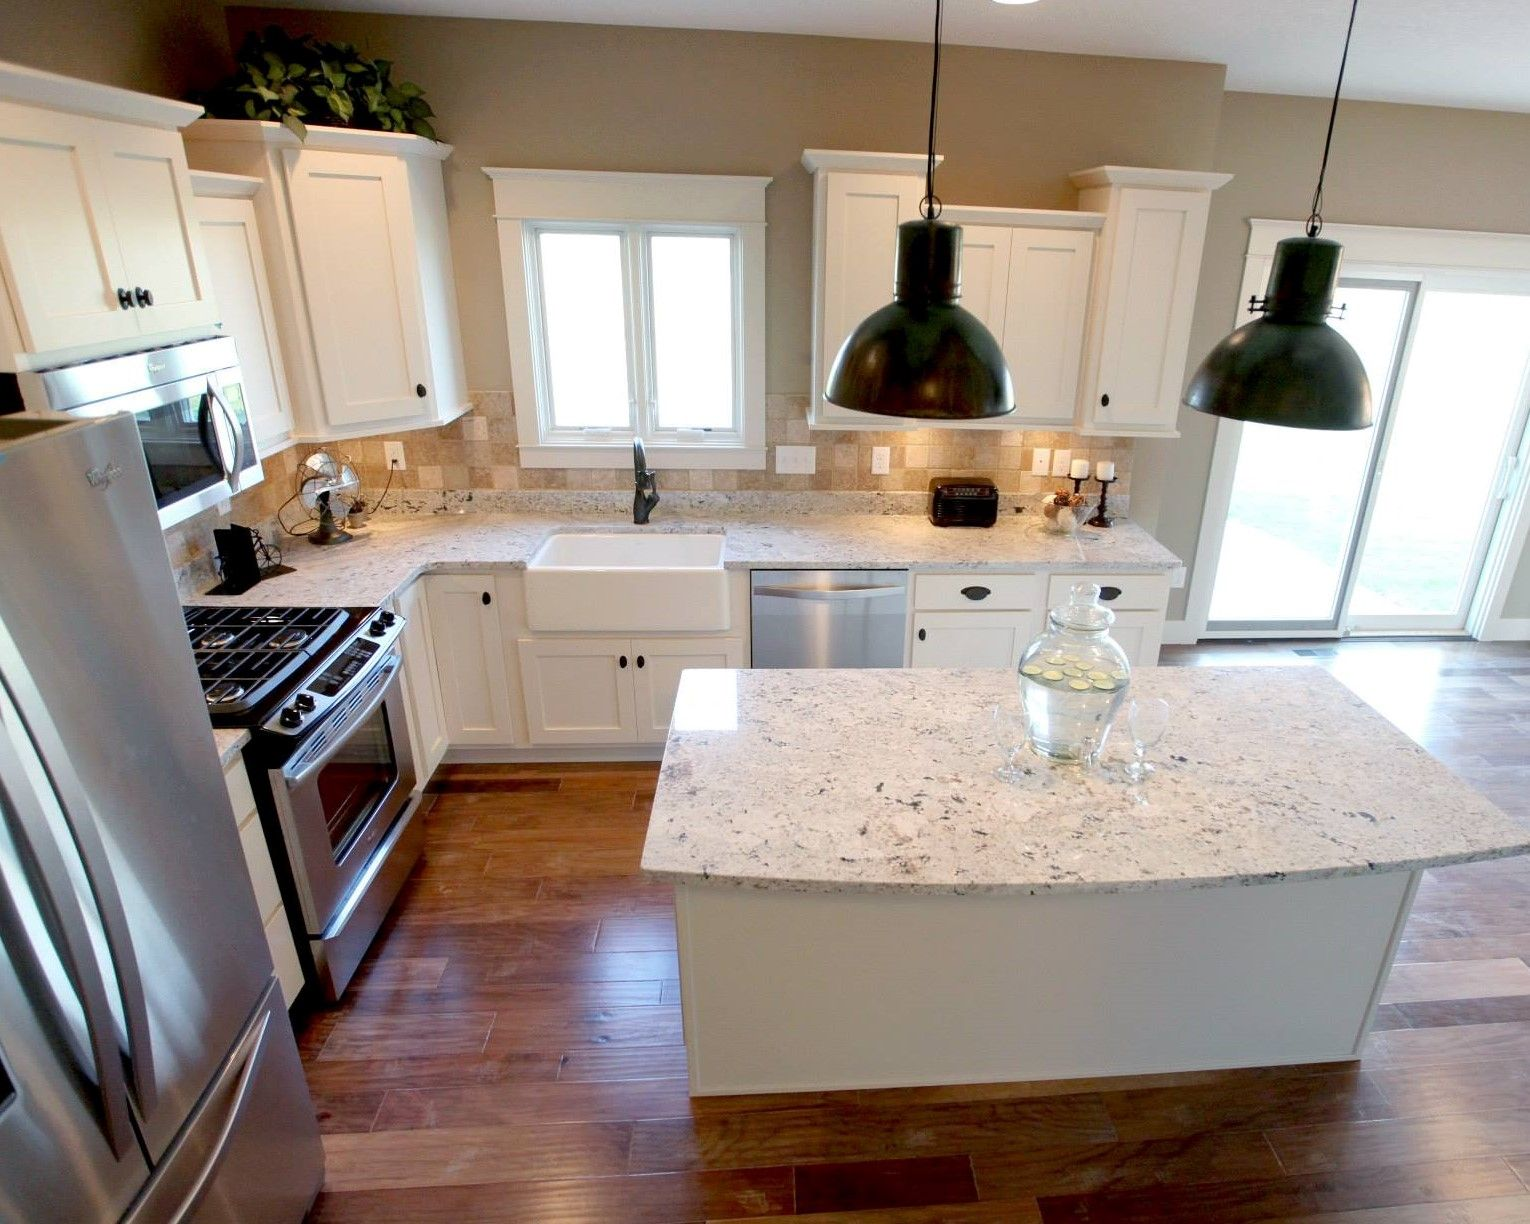 Lshaped kitchen layout with an arched overhang on the